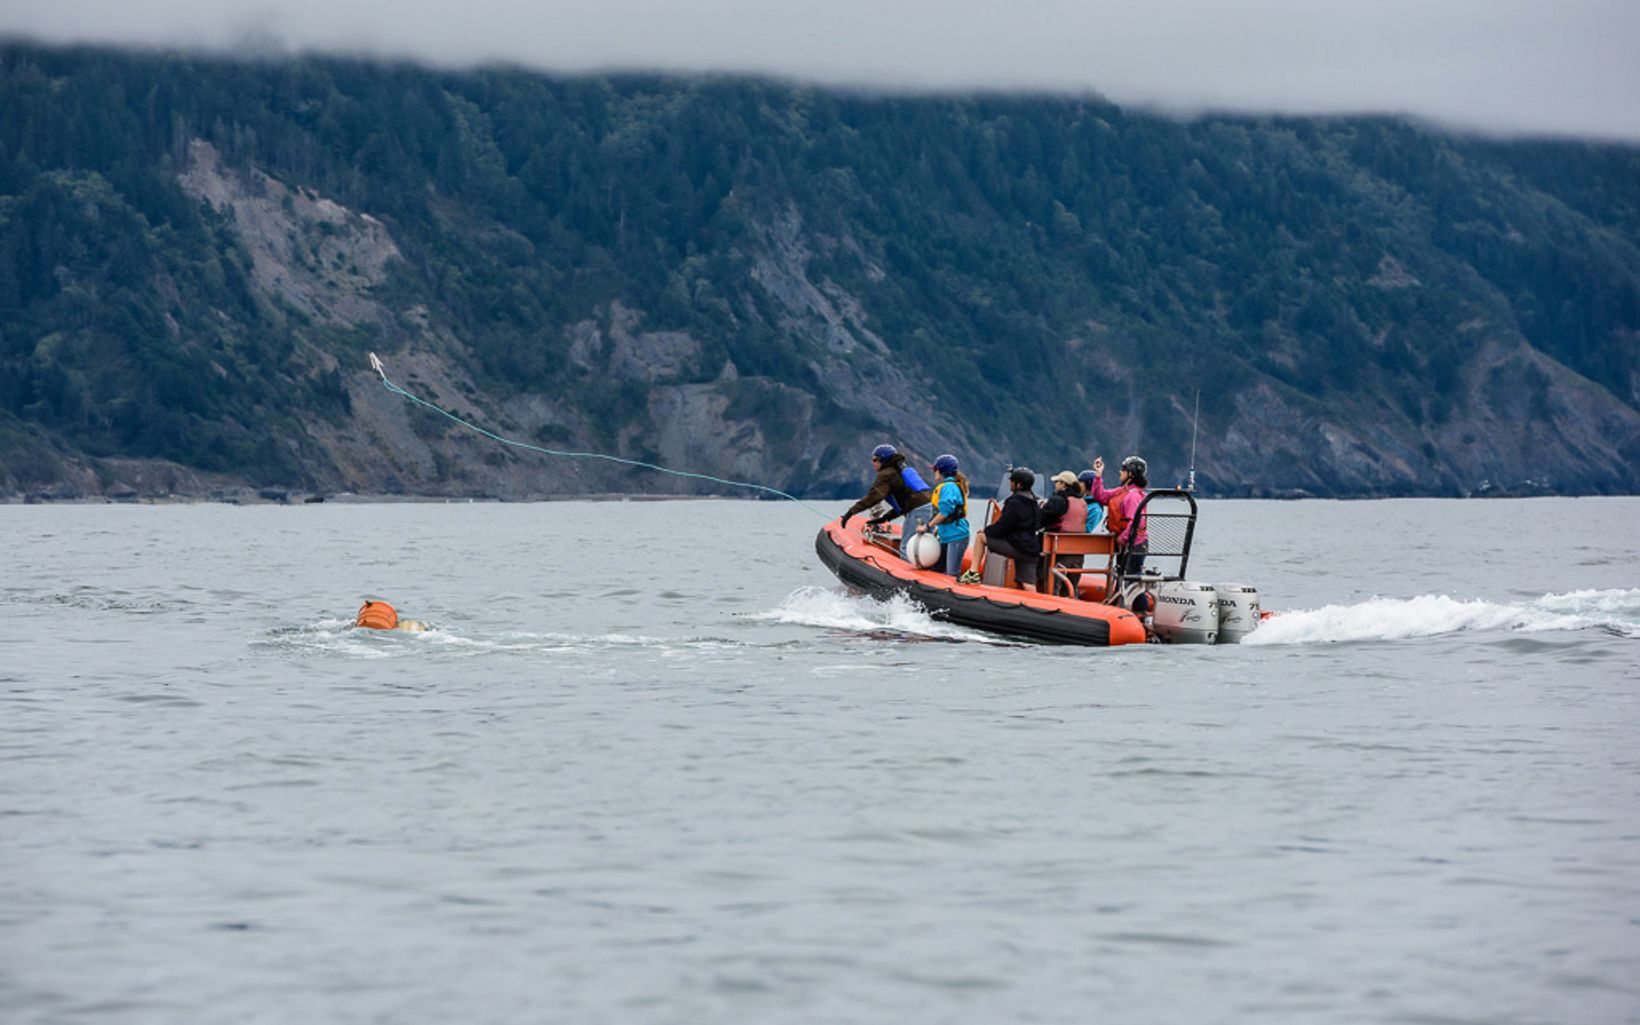 A group of people in an orange inflatable dinghy. One of them is in the process of throwing out a line in the direction of a crab pot buoy in the water.